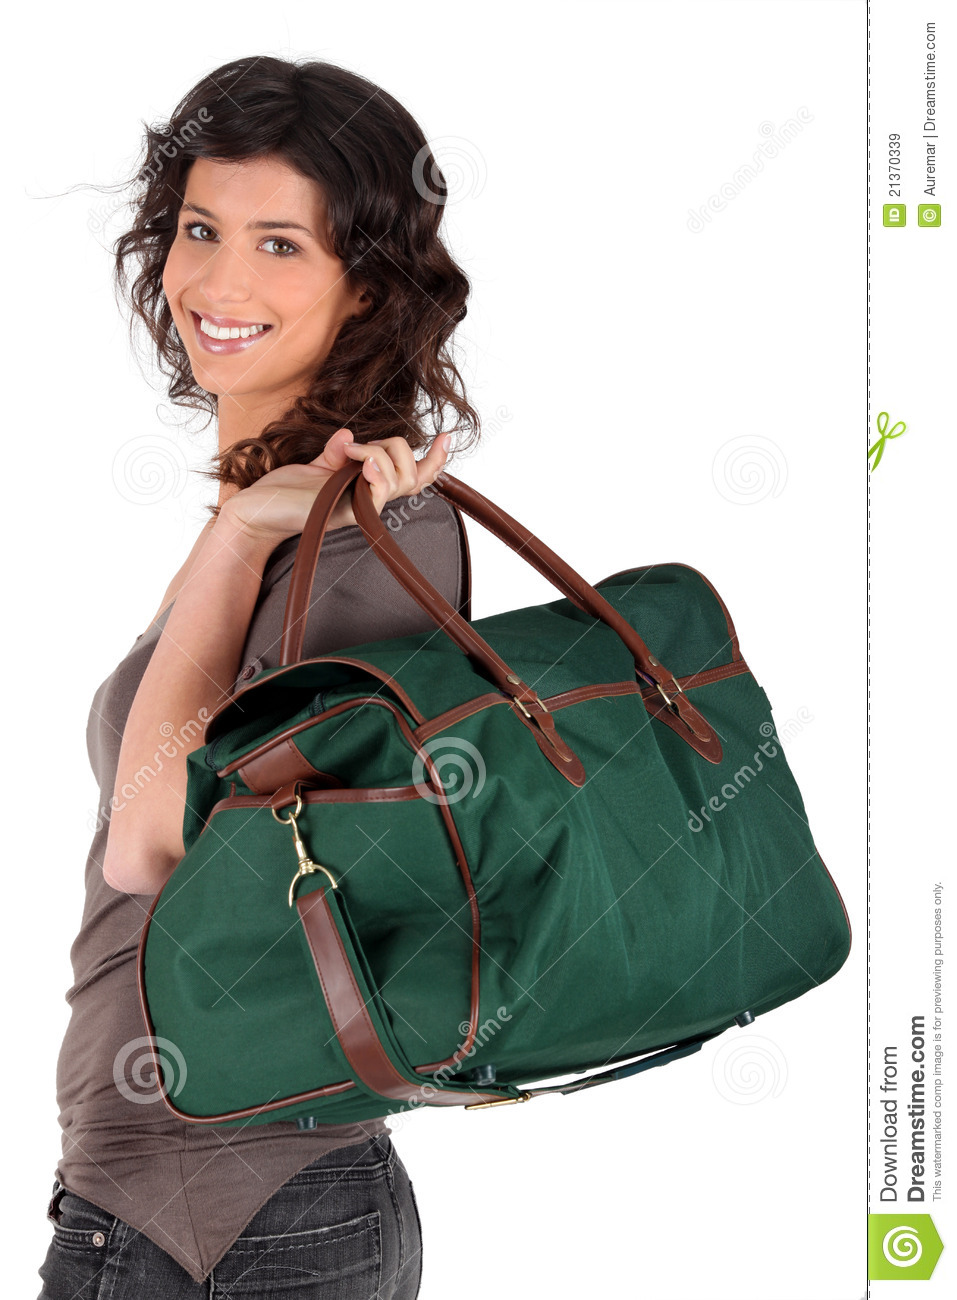 Woman Carrying A Weekend Bag Over Her Shoulder Royalty Free Stock ...